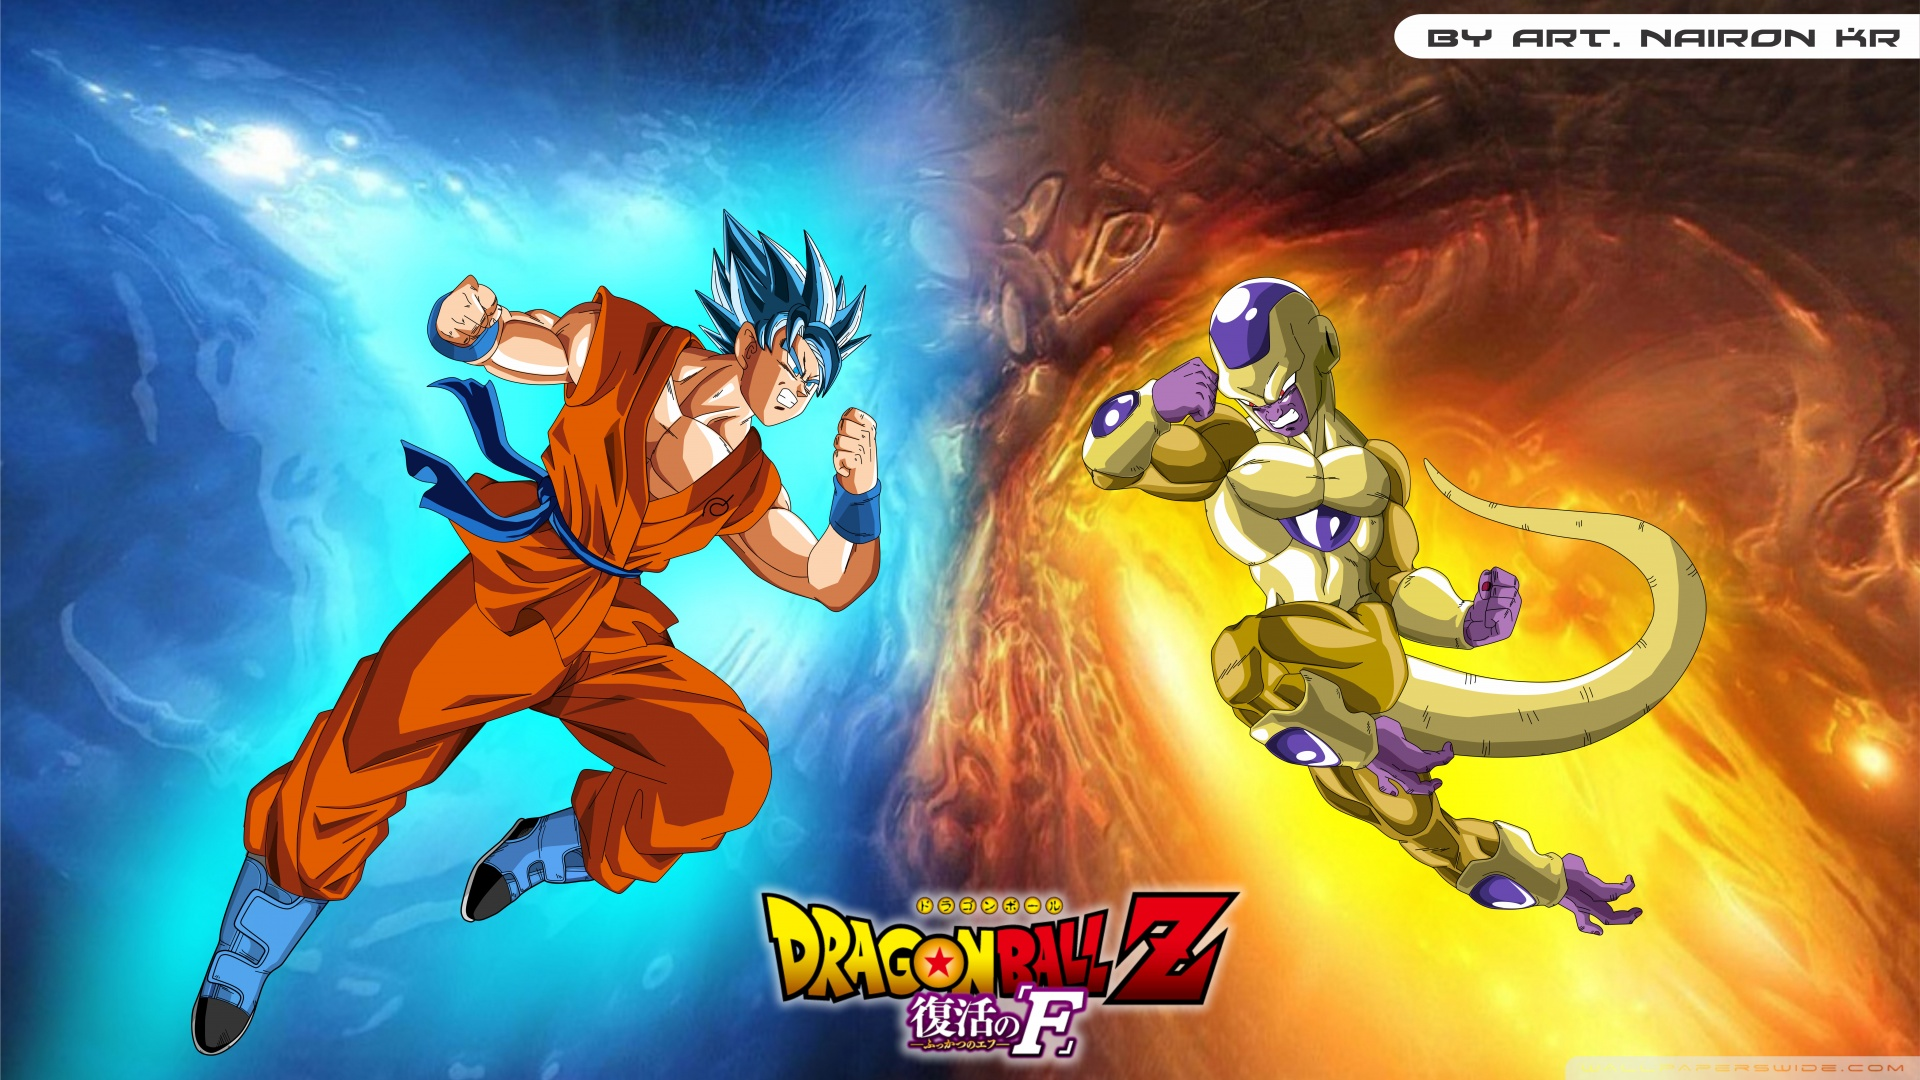 Dbz Dual Screen Wallpapers: Goku Vs Friza Image